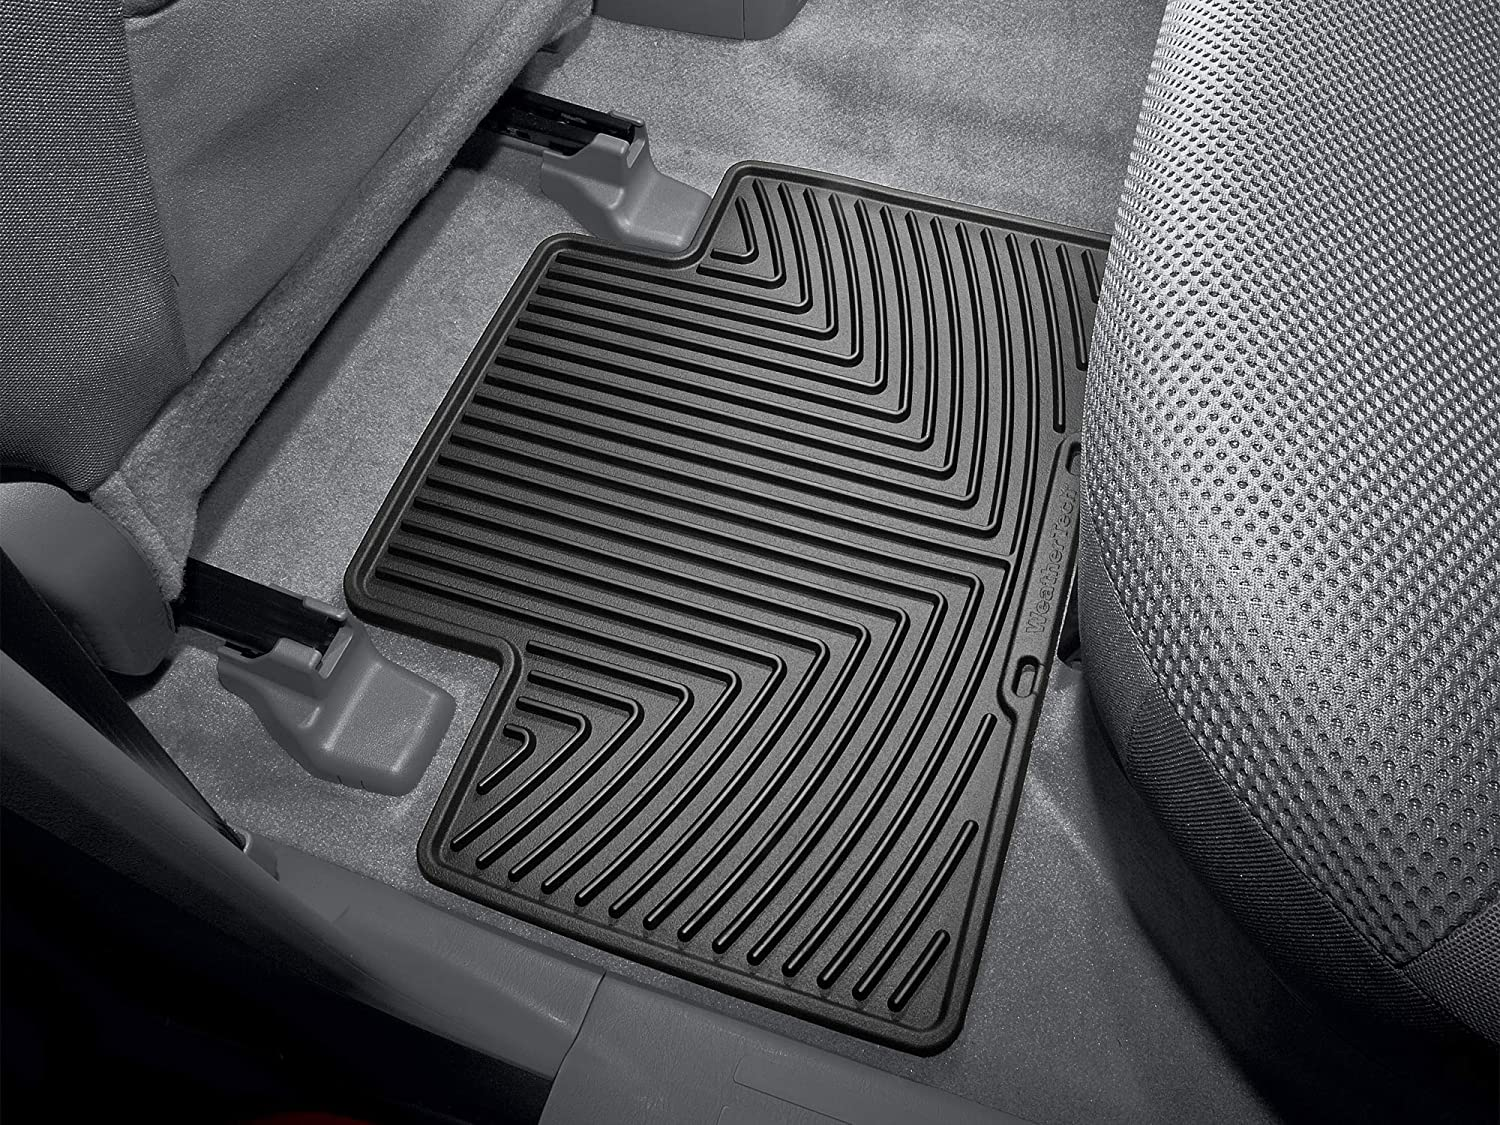 Black W136 WeatherTech All-Weather Trim to Fit Rear Rubber Mats for Select Toyota Tacoma//4 Runner Models